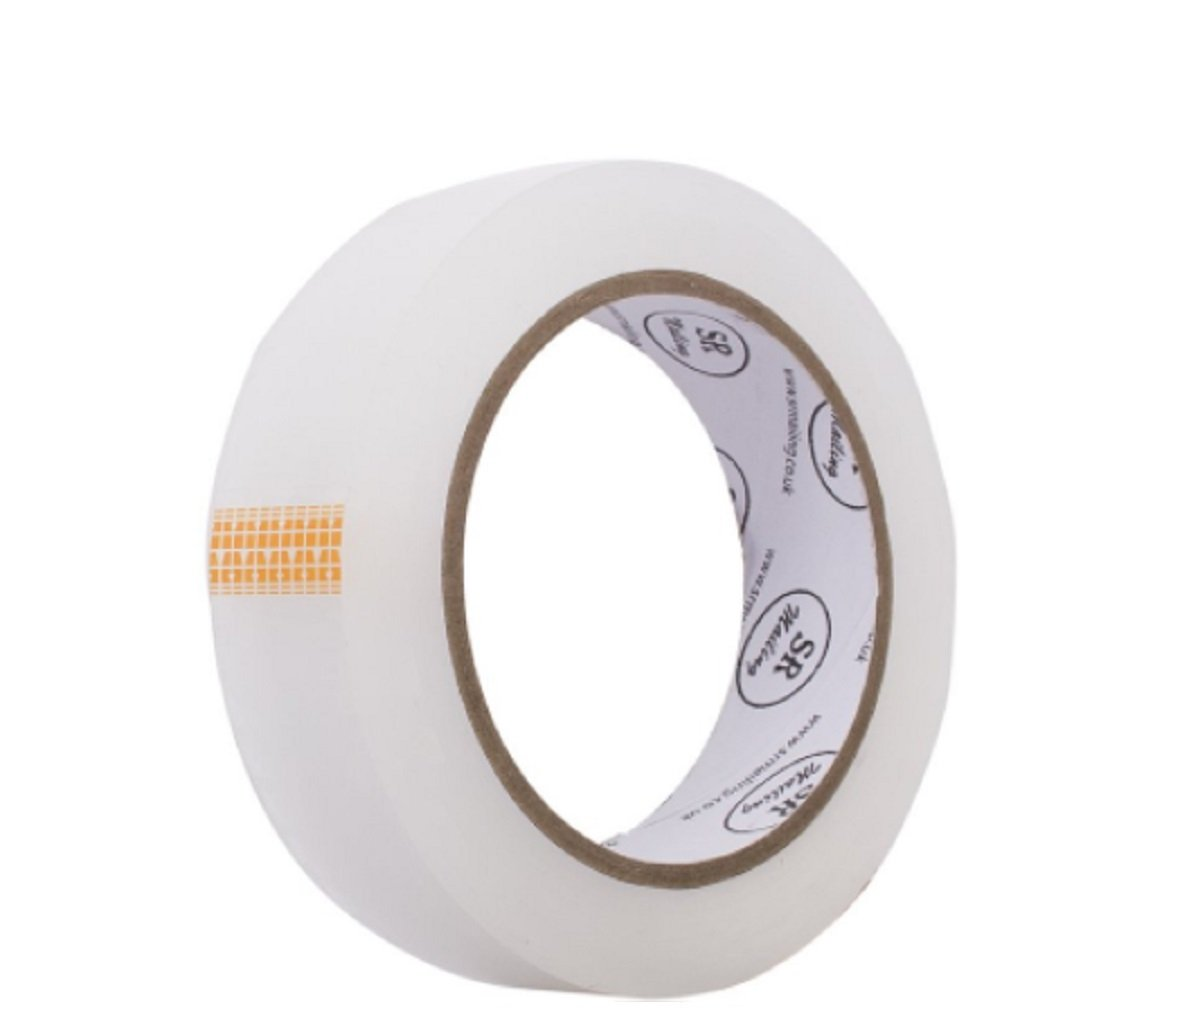 1 LeahWard 24MM X 91M Extra Long Length Packaging Tape Strong Glue